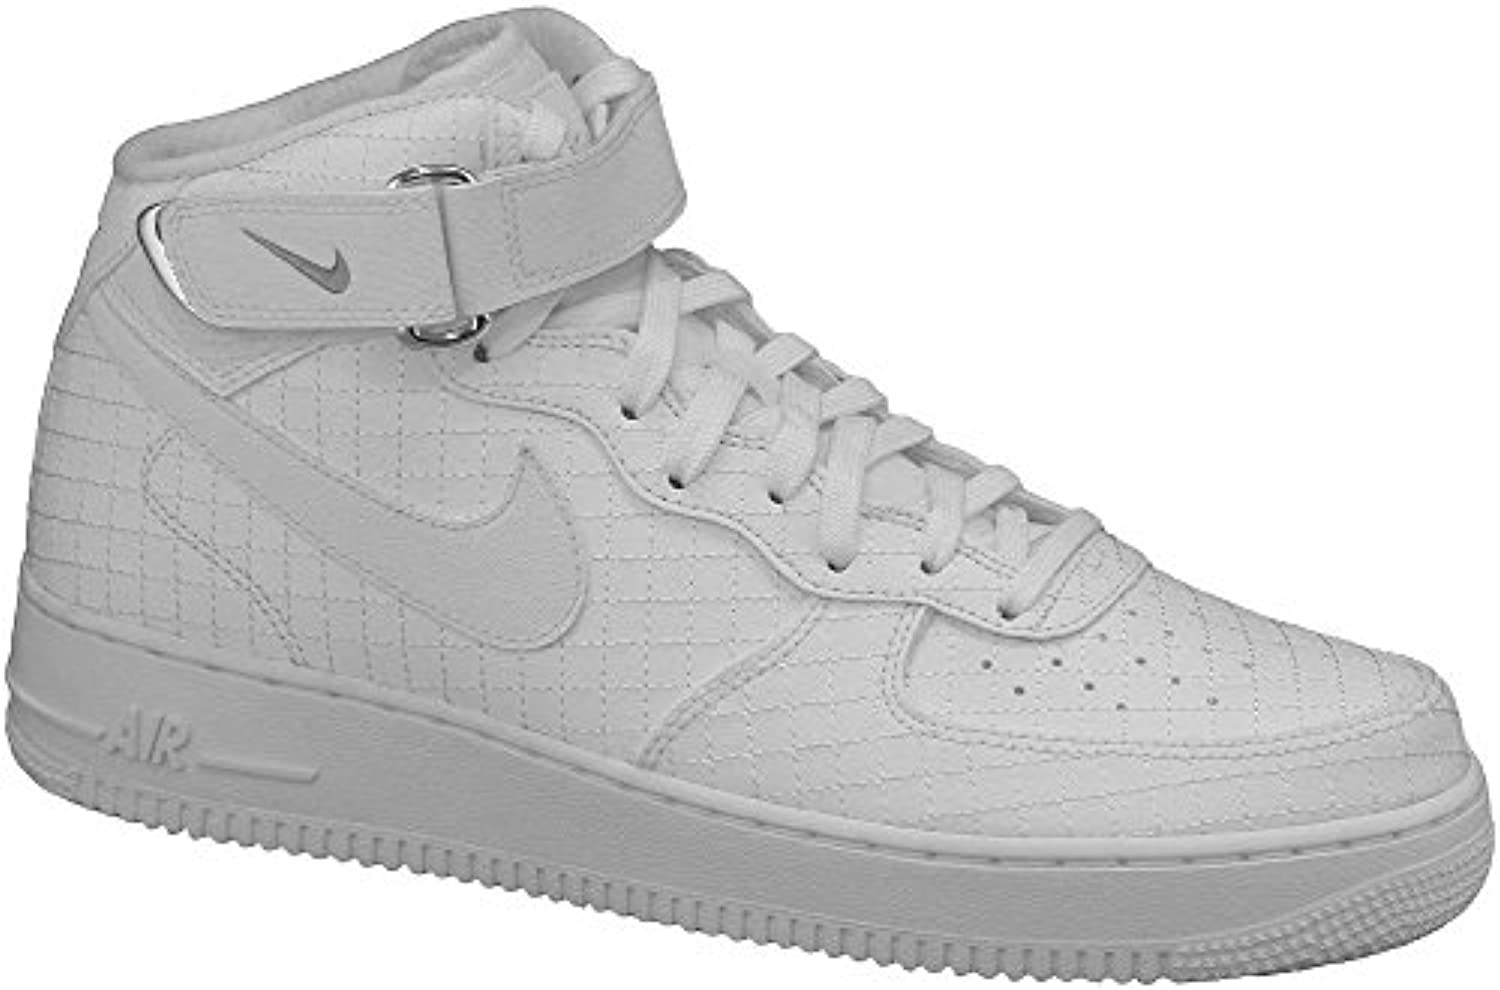 Nike Air Force 1 Mid '07 Lv8 Herren Basketballschuhe